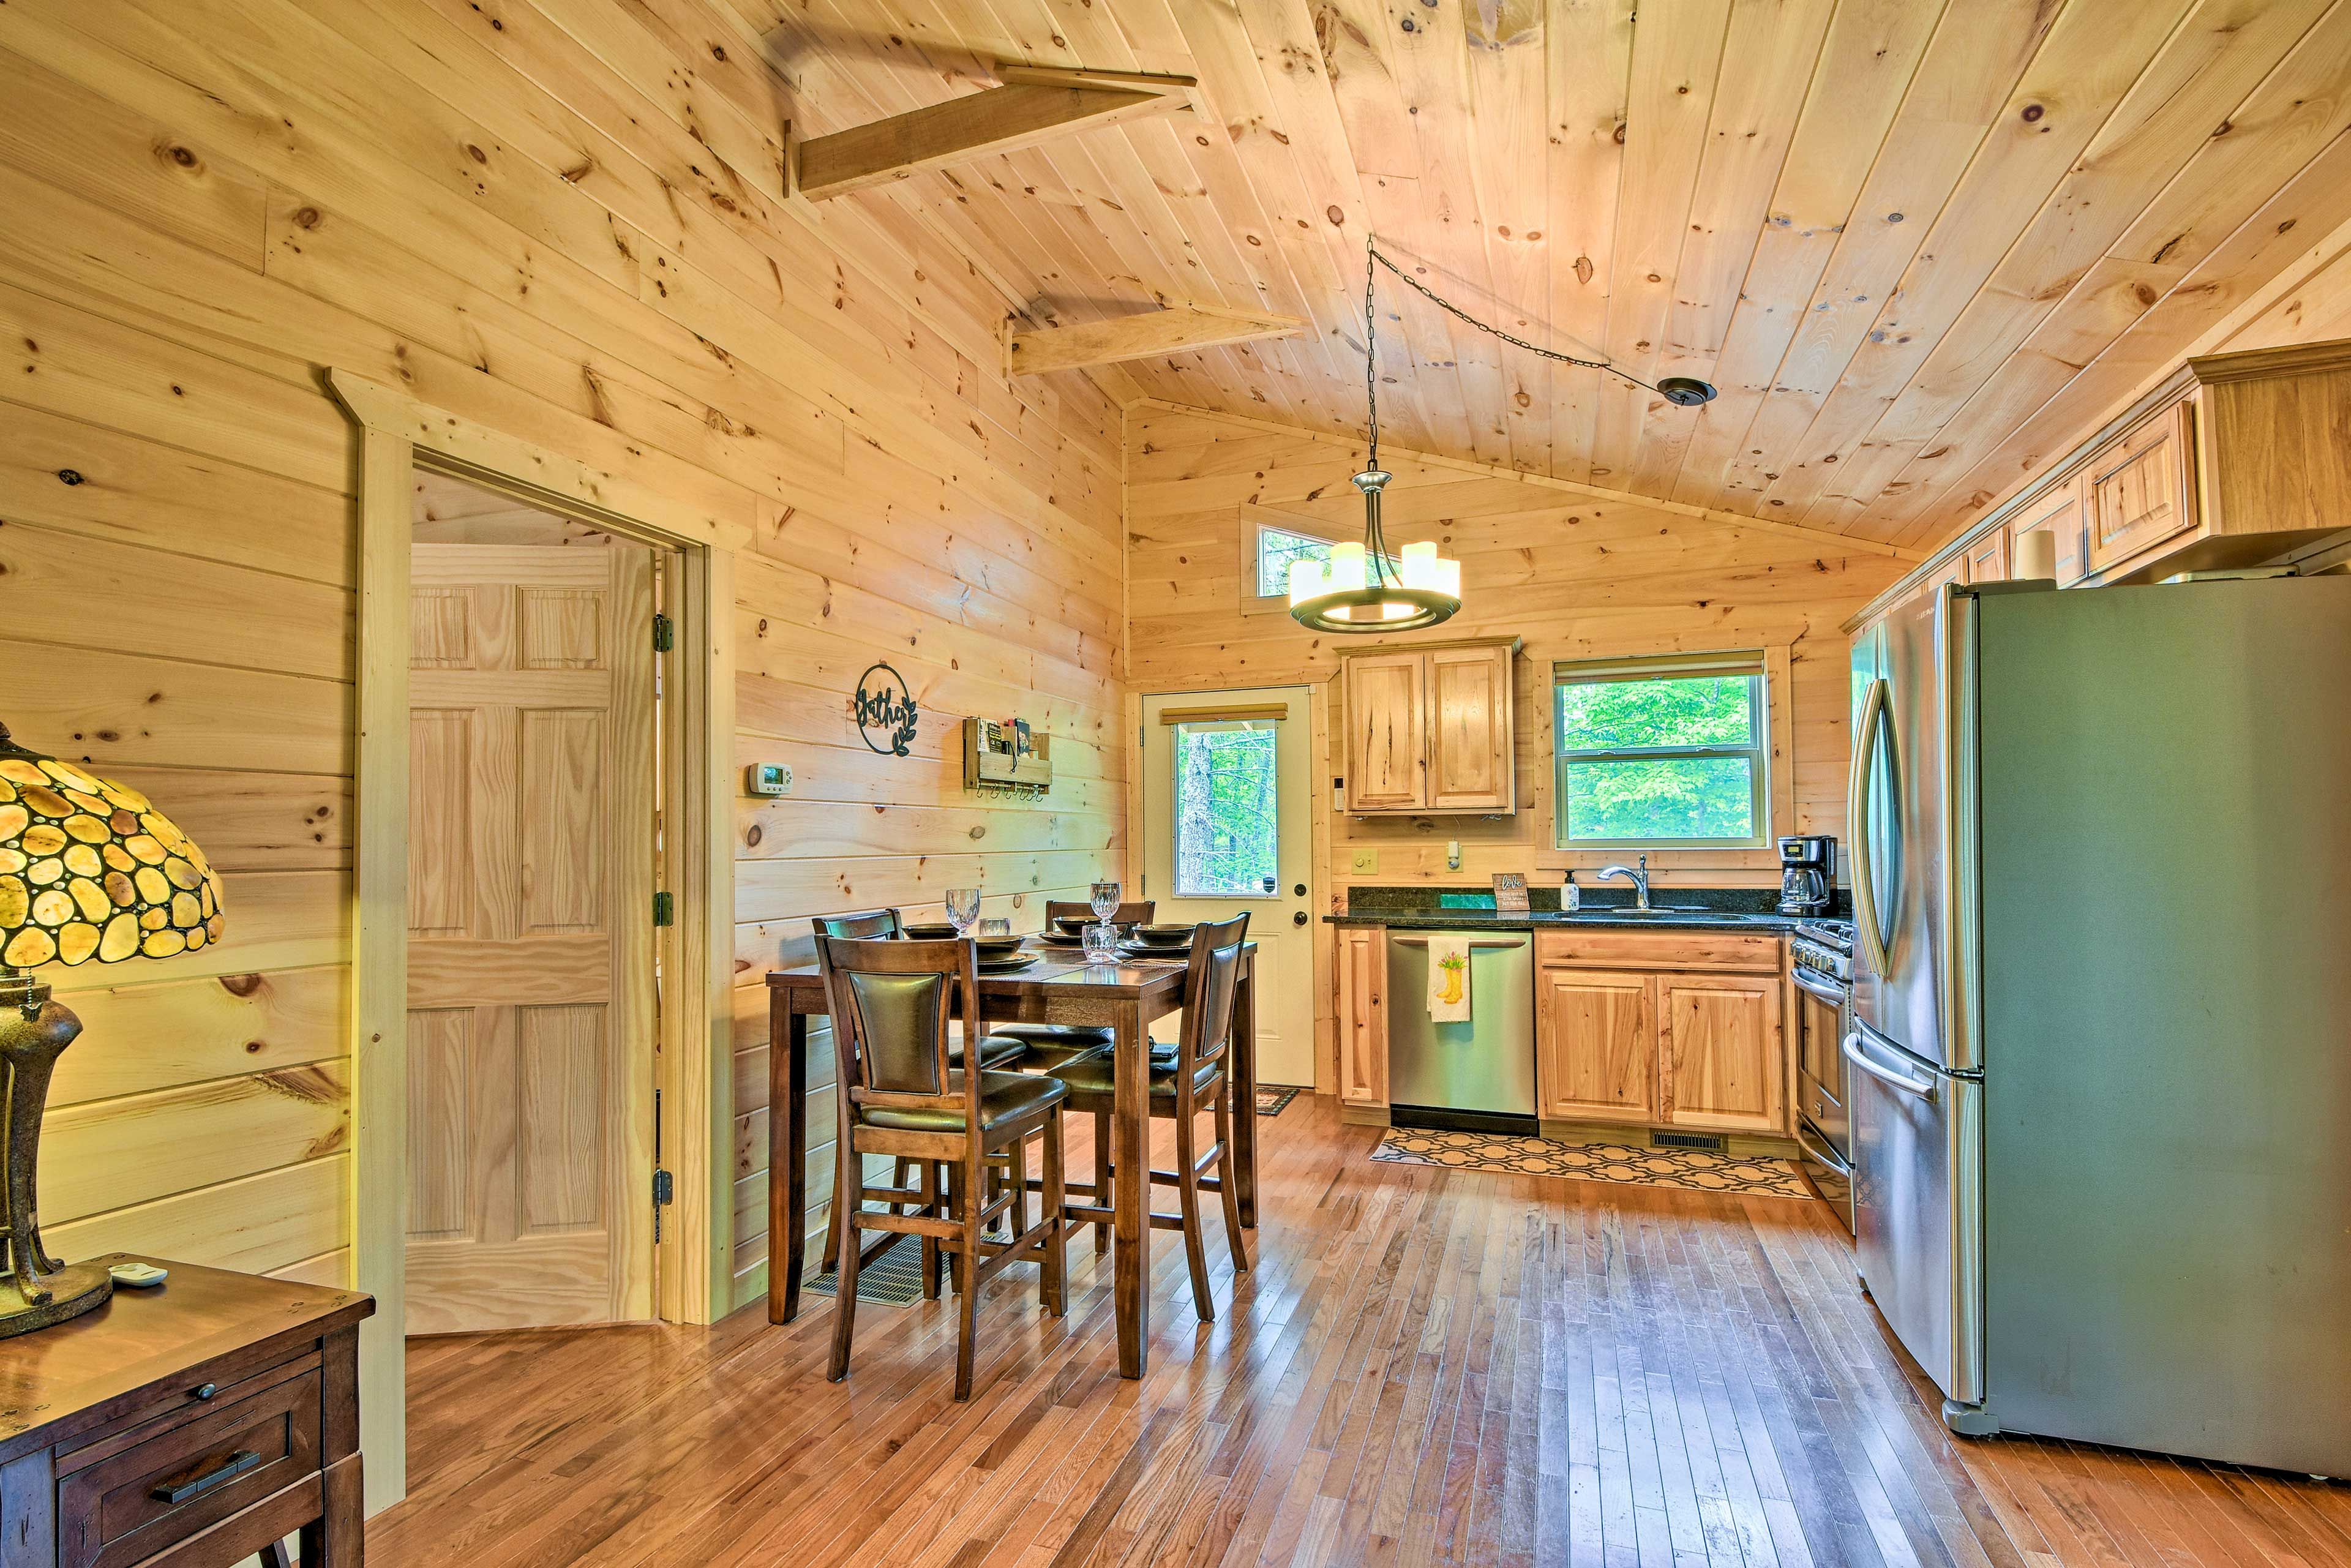 Adjacent to the living area is a fully equipped kitchen.